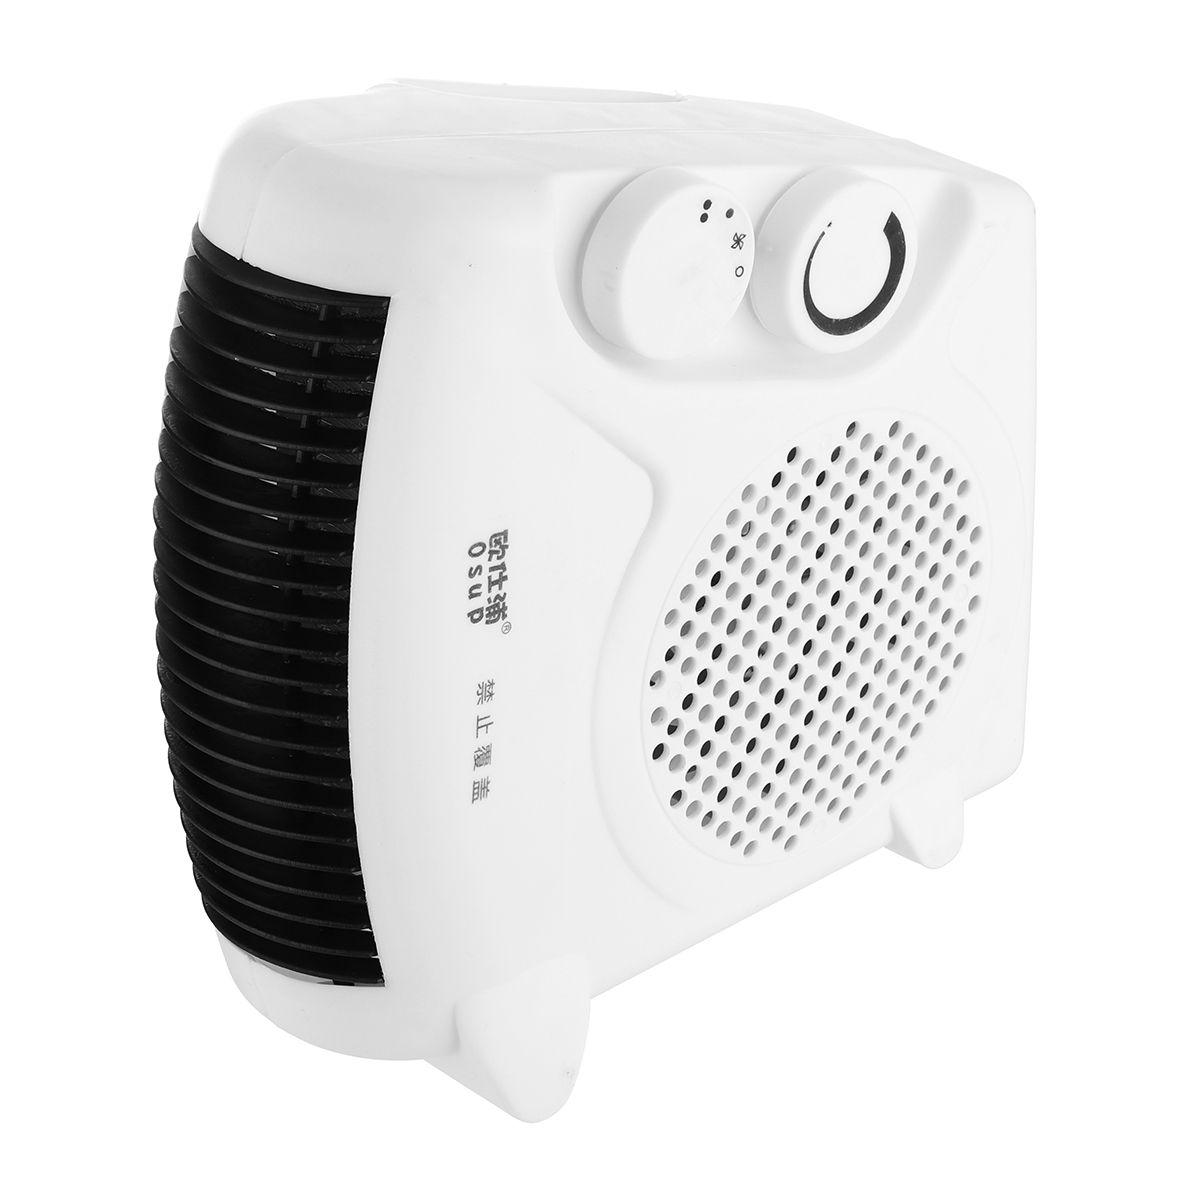 Other Gadgets 500w Air Cooler Mini Portable Air